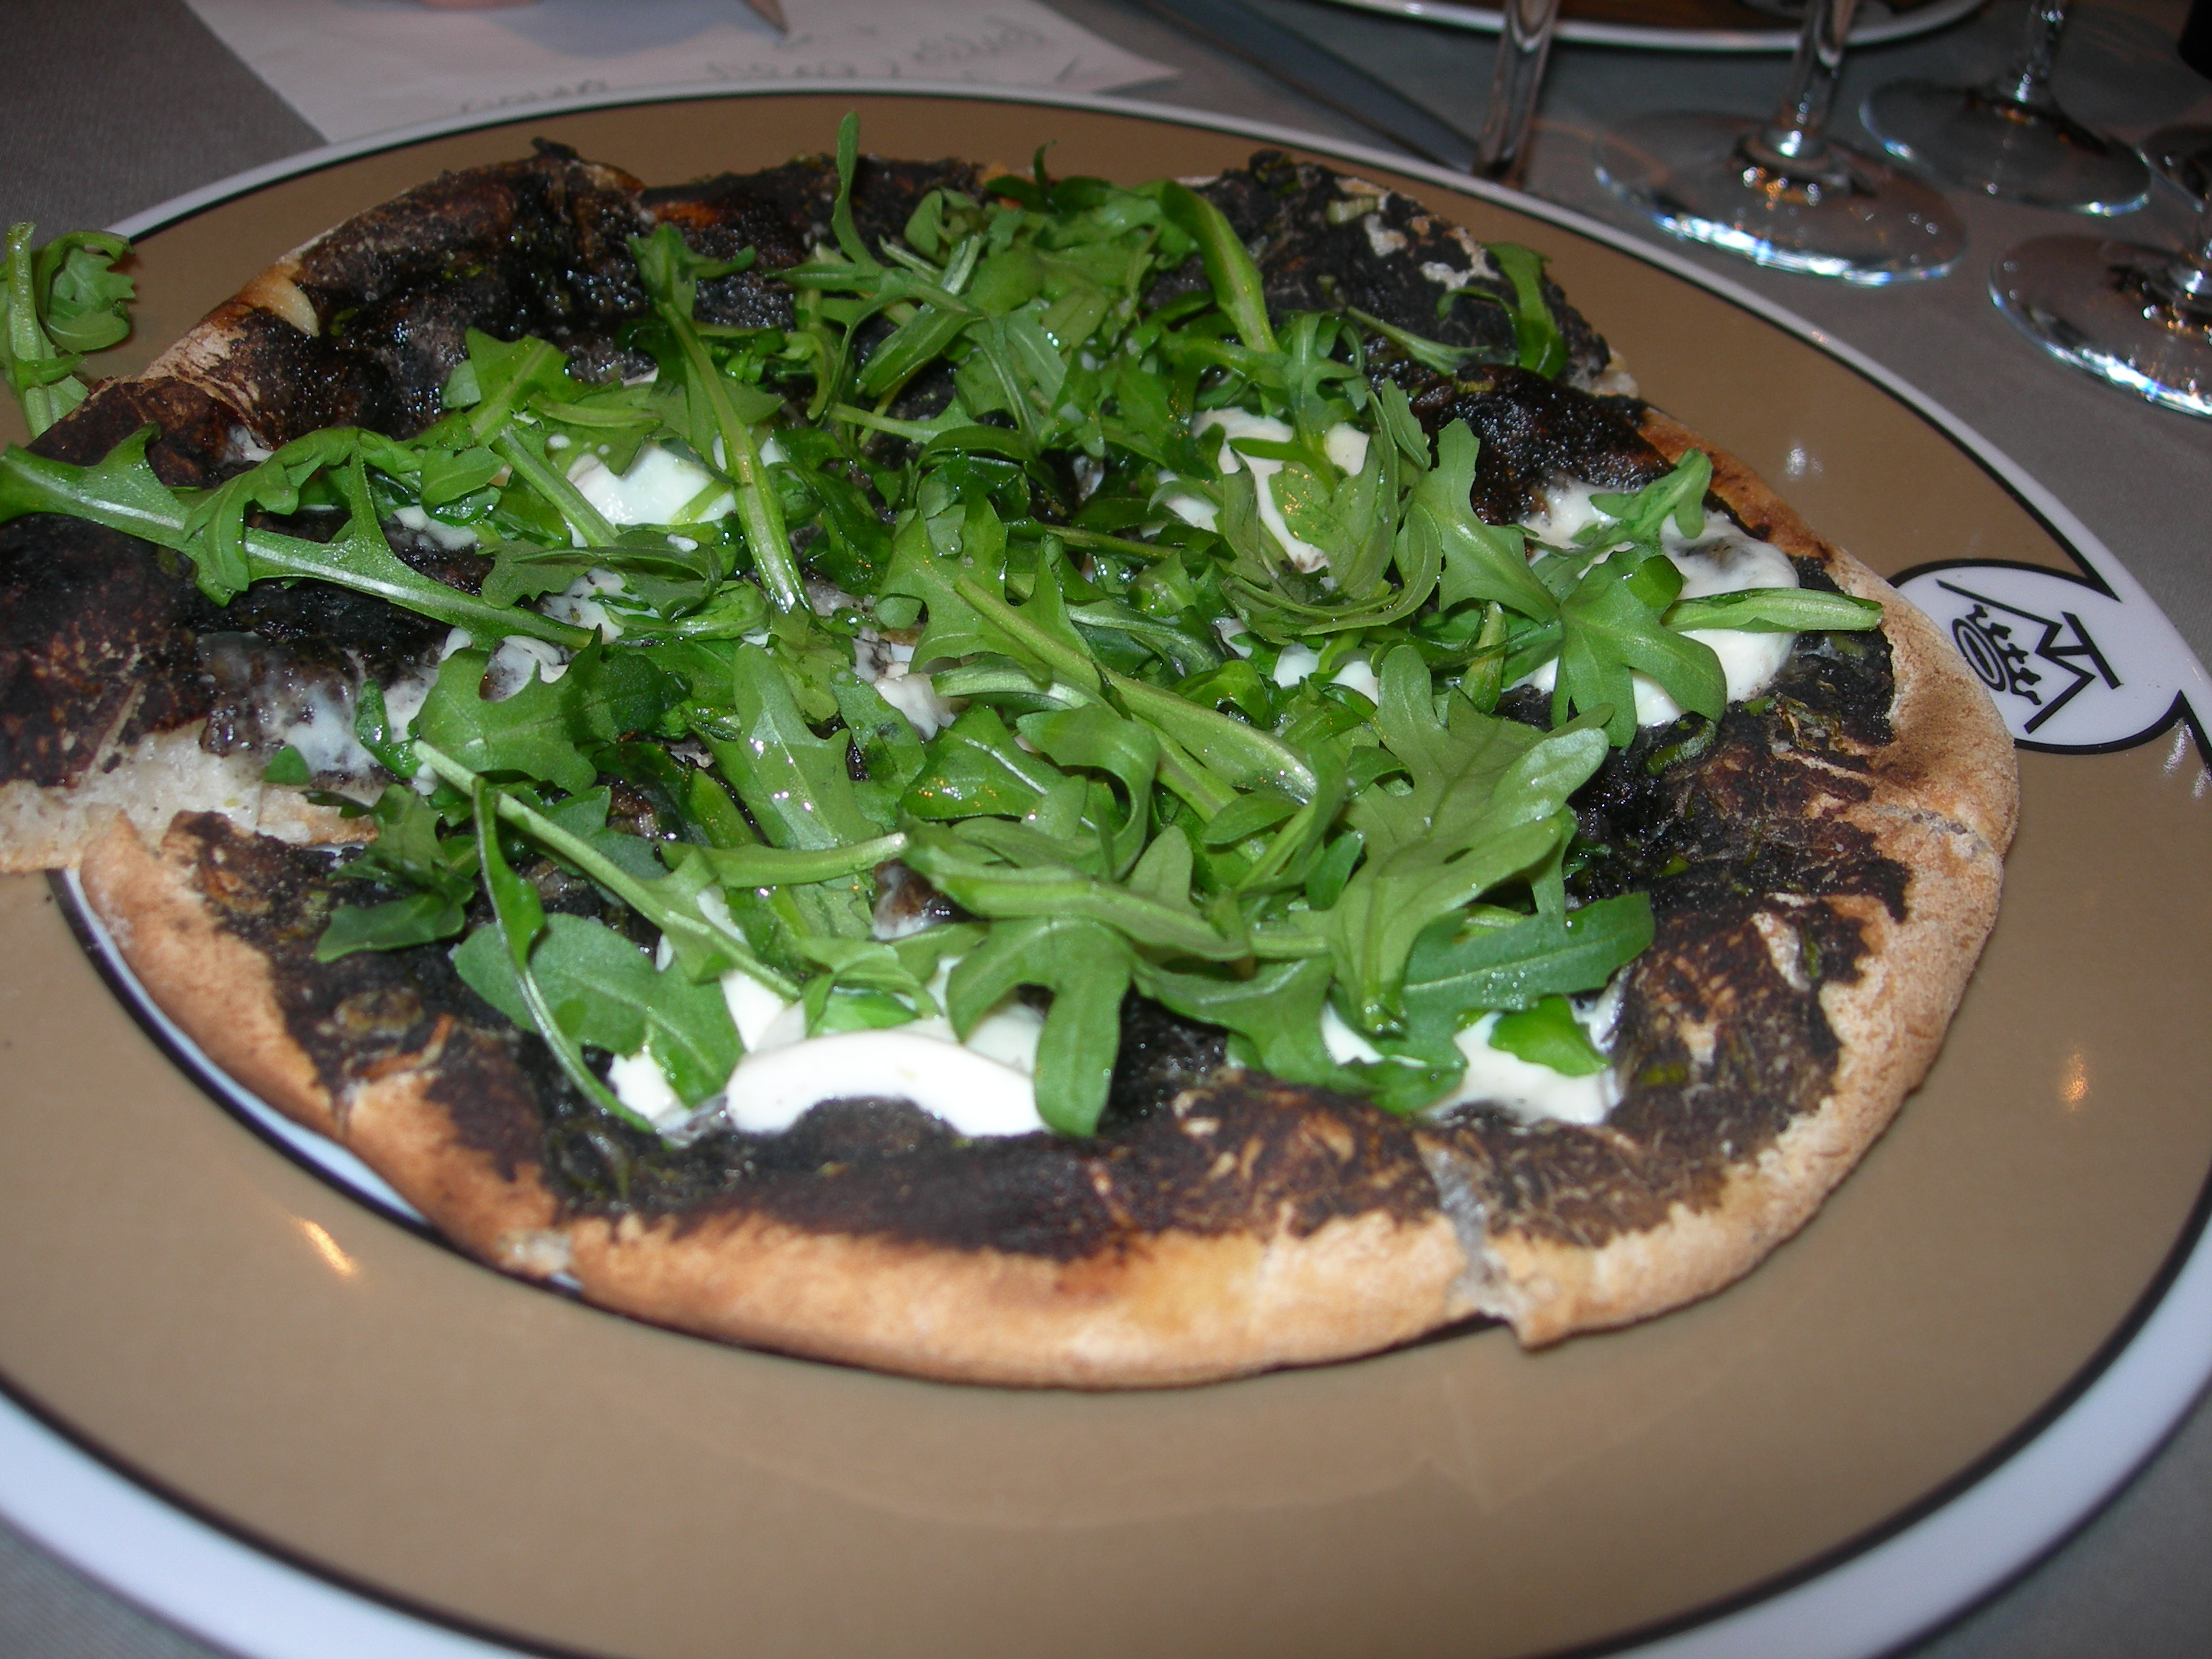 Black truffle pizza from Maison de la Truffe, Paris